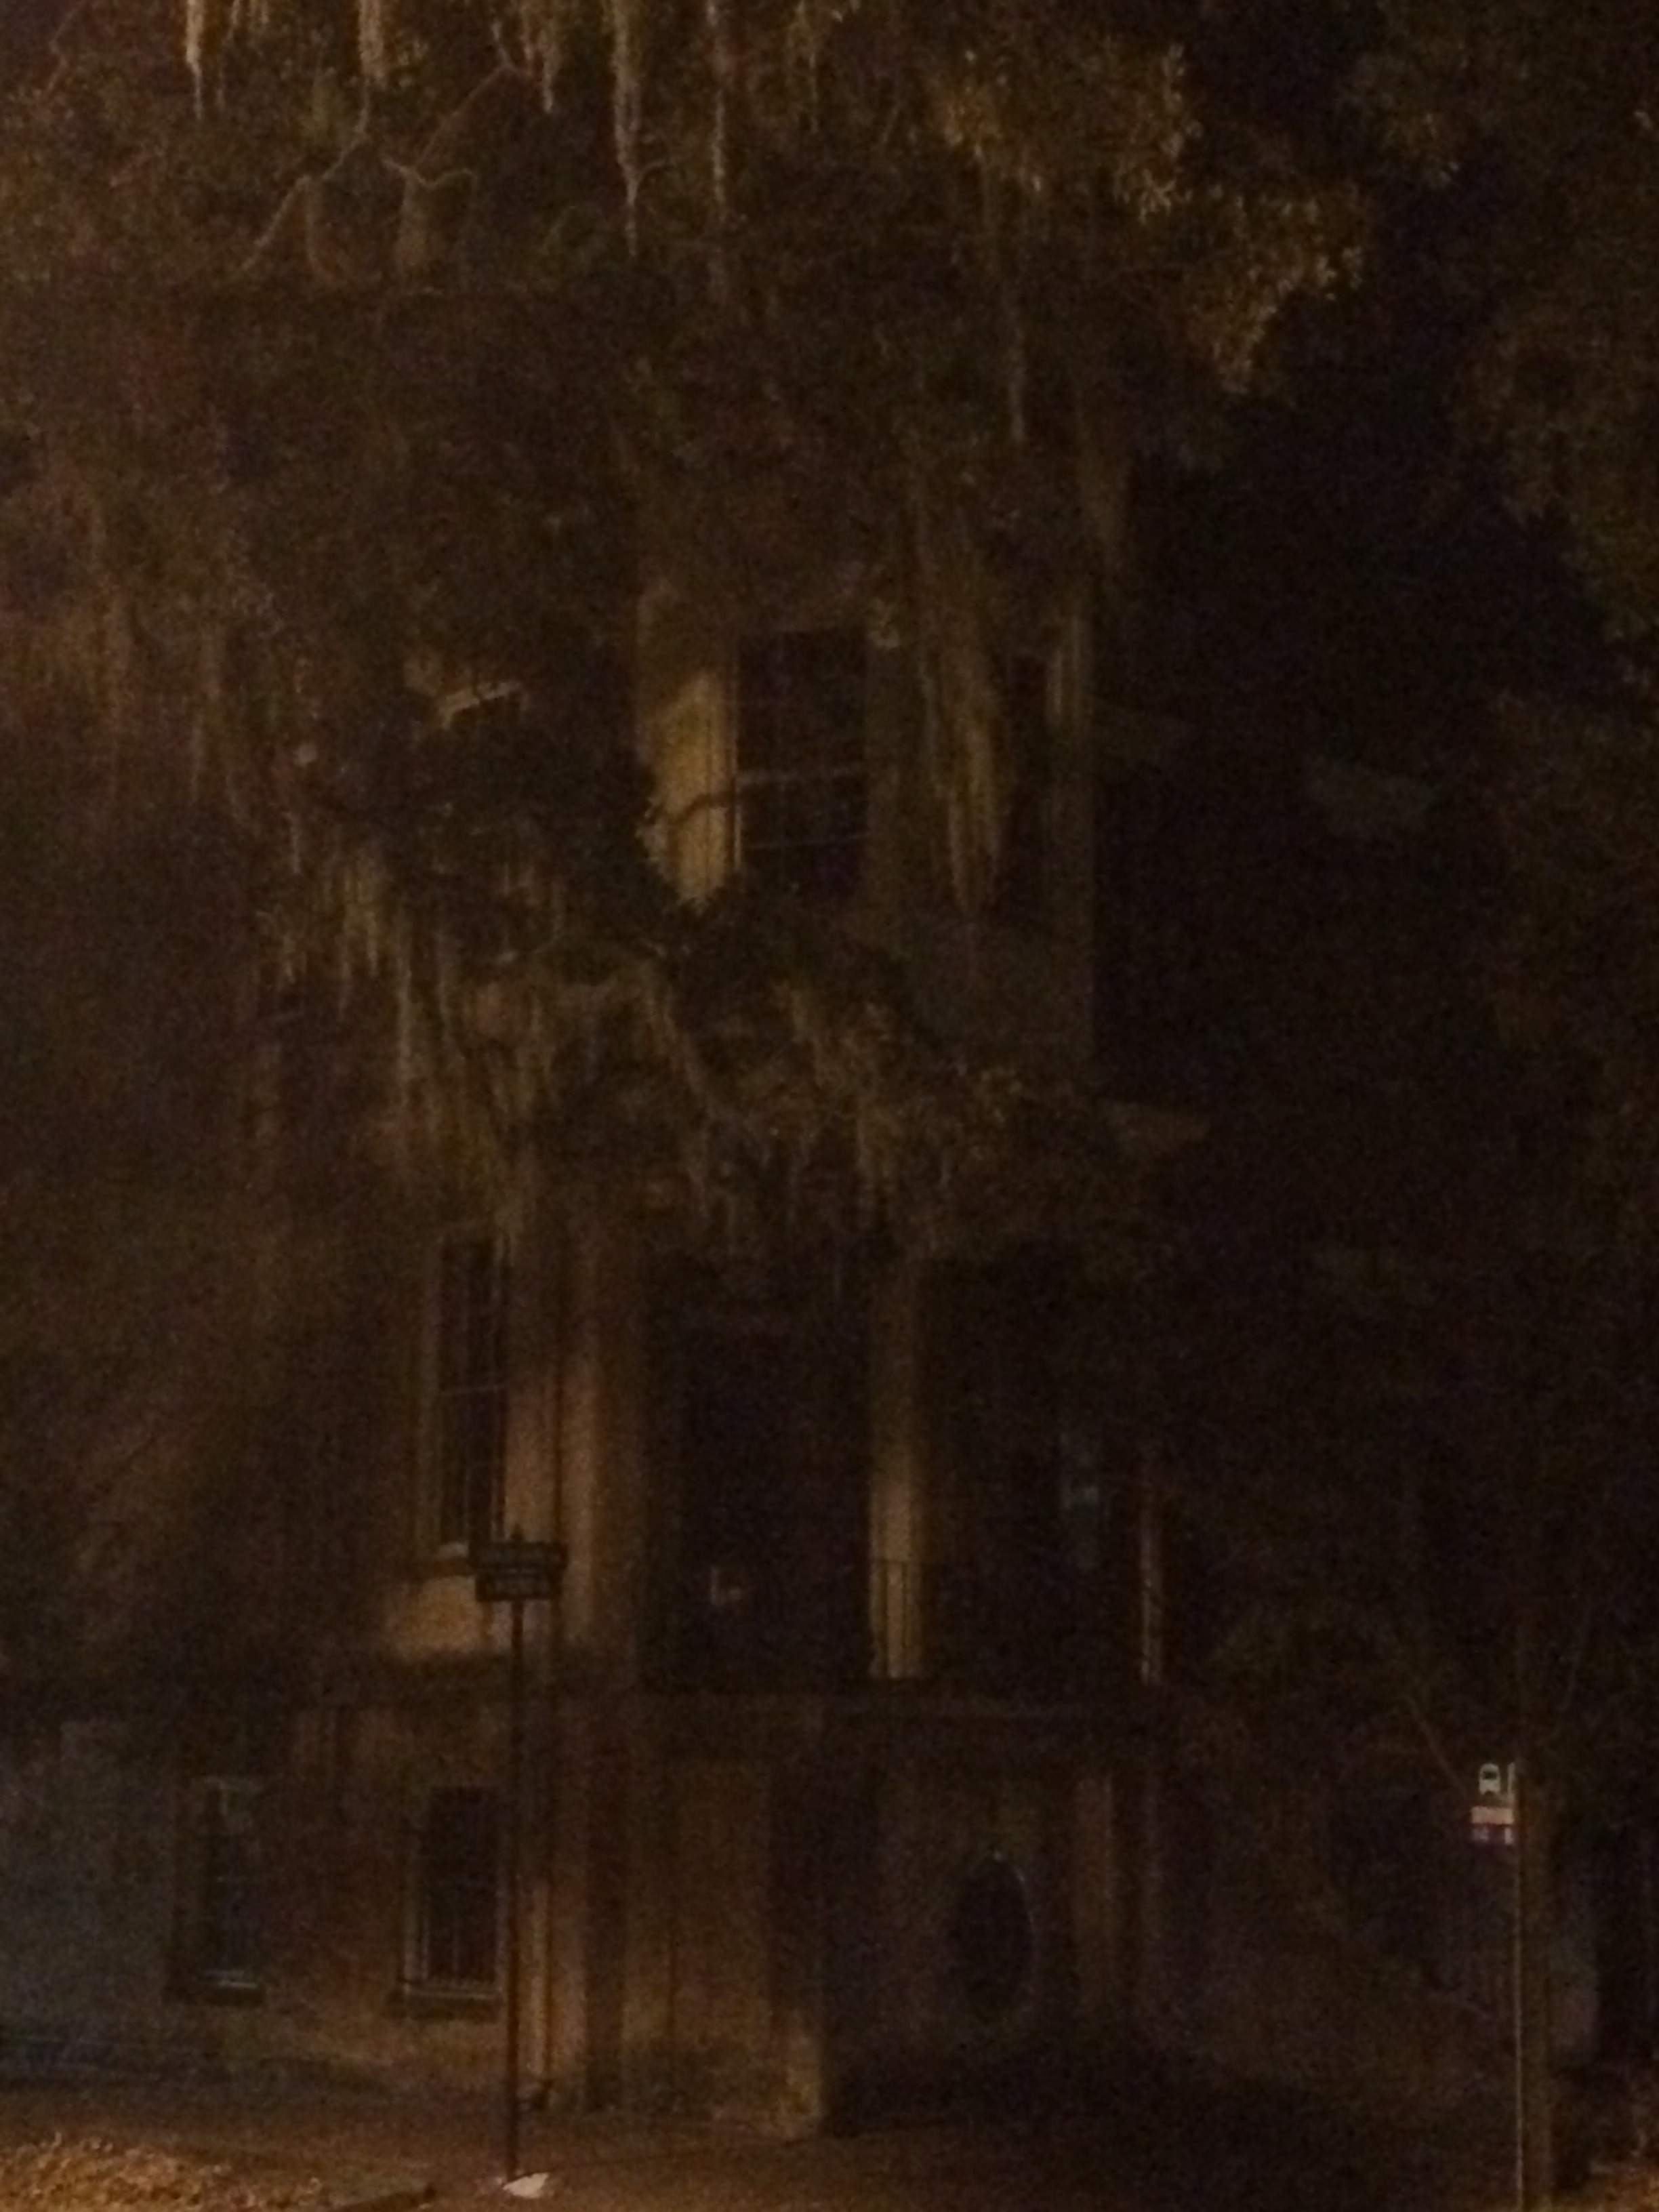 Best Savannah Ghost Tours Reviews